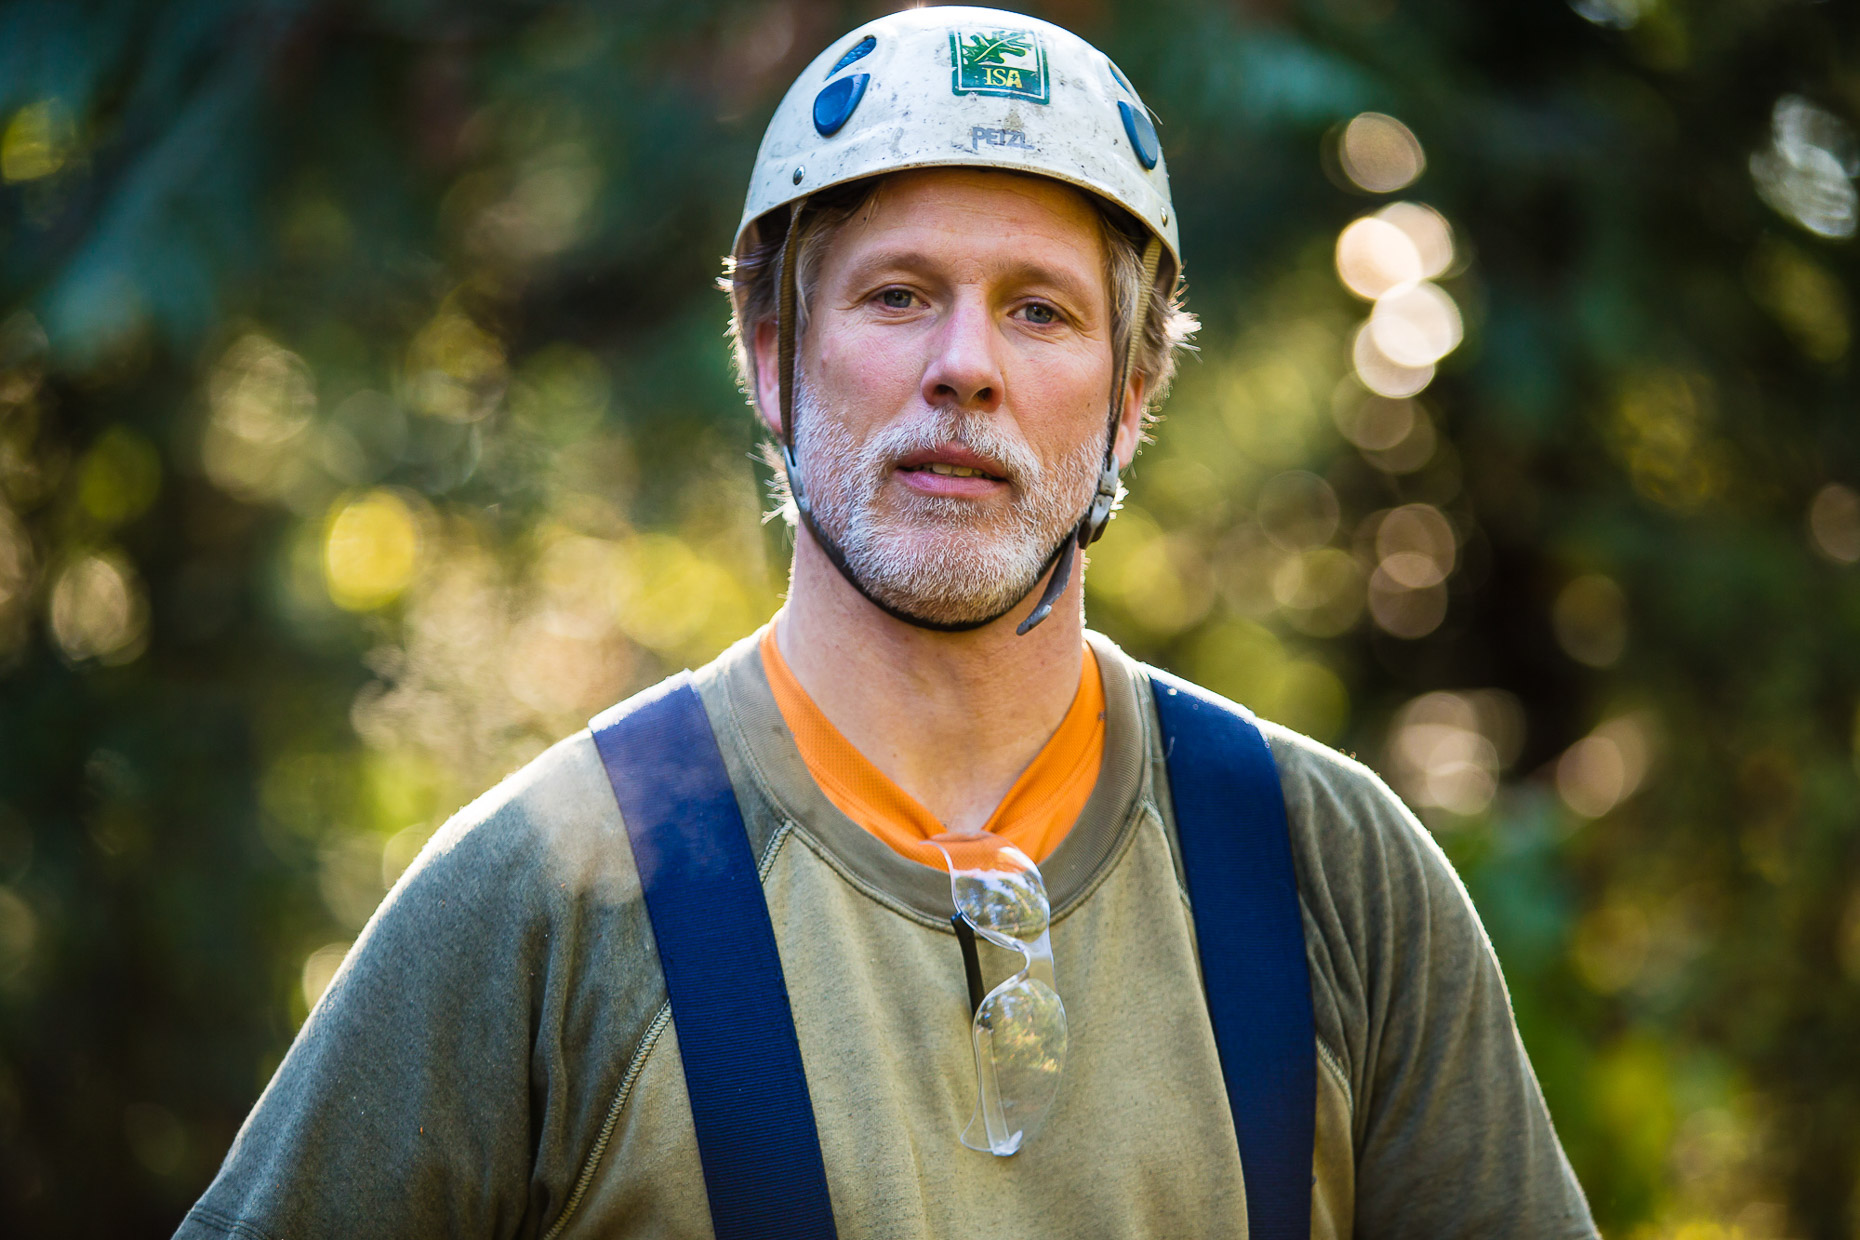 Authentic Portraits of People at Work  | Seattle Industrial Photographer | Jed Share Images | Portrait of an arborist working in Seattle